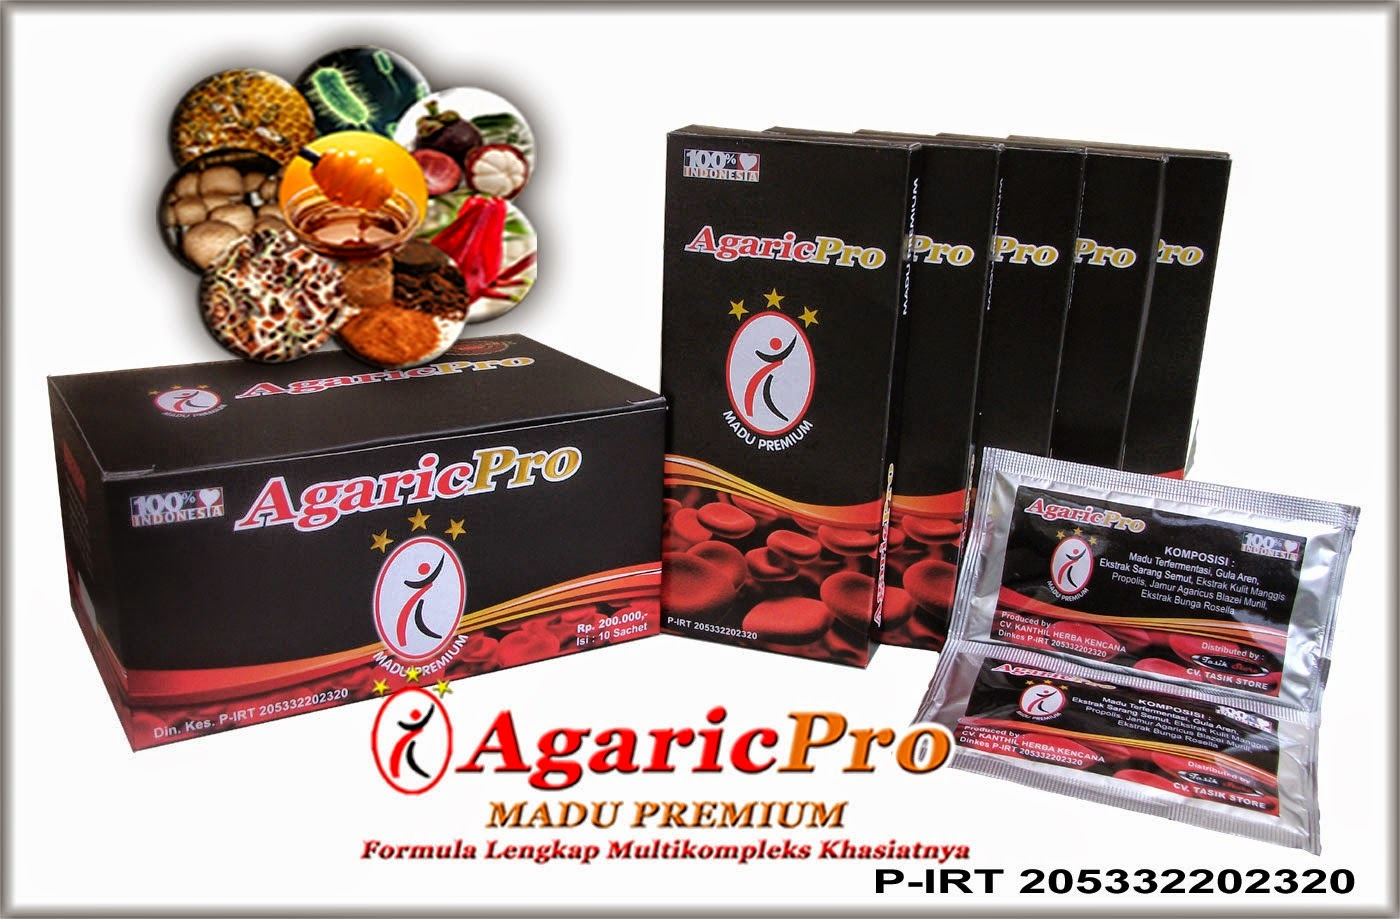 Komposisi Obat Herbal AgaricPro